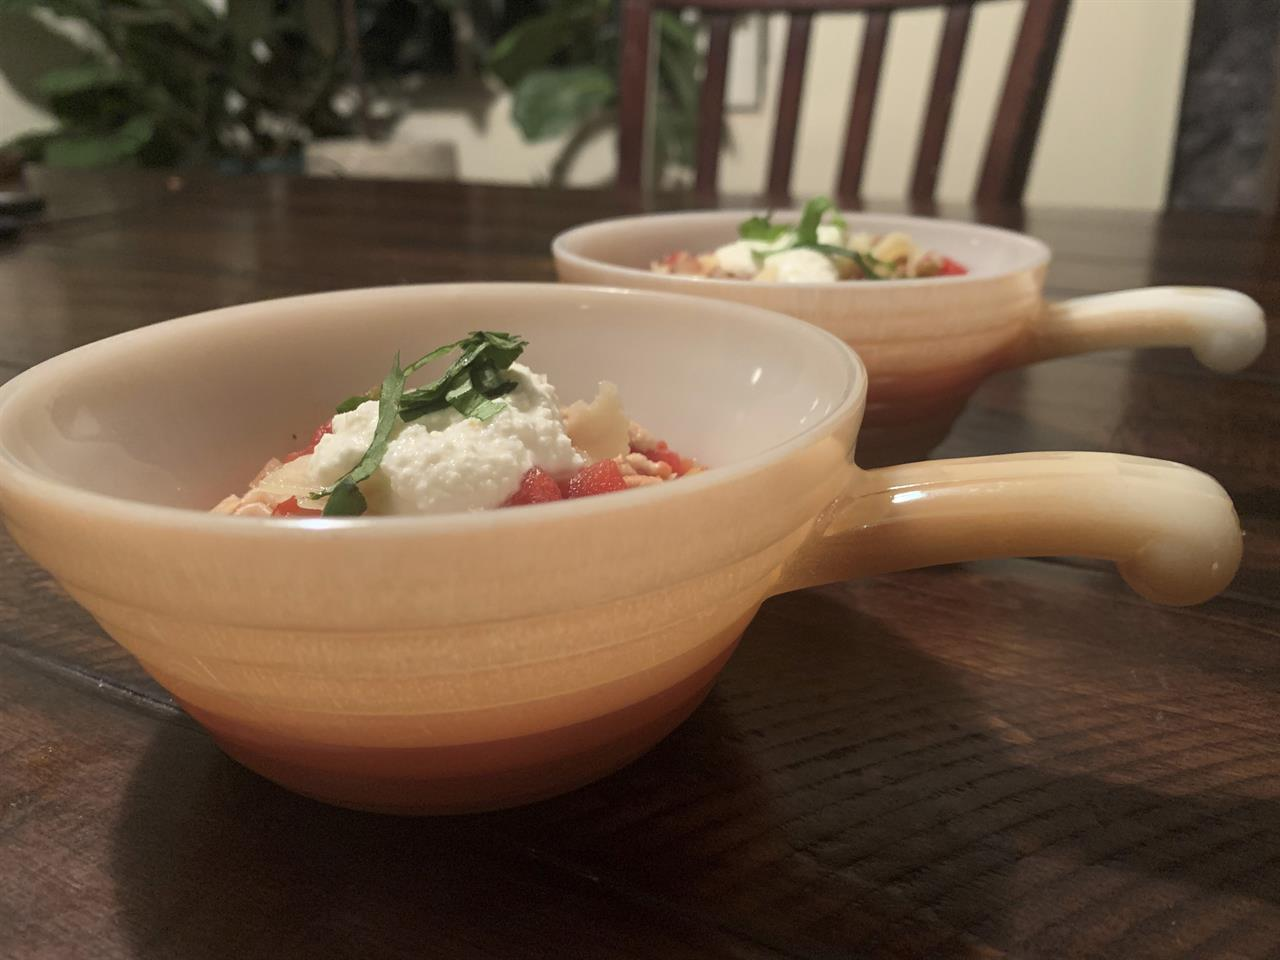 This image provided by Tracee Herbaugh depicts two vintage peach lustre Fire King chili bowls. There are lustrous chili bowls with handles, stackable refrigerator boxes, and casserole dishes set on top of brass candle warmers. These are durable dishes, often smaller than modern serving pieces, that can go from freezer to oven to table. But collectors usually acquire them for enjoyment, not utility. (Tracee Herbaugh via AP)